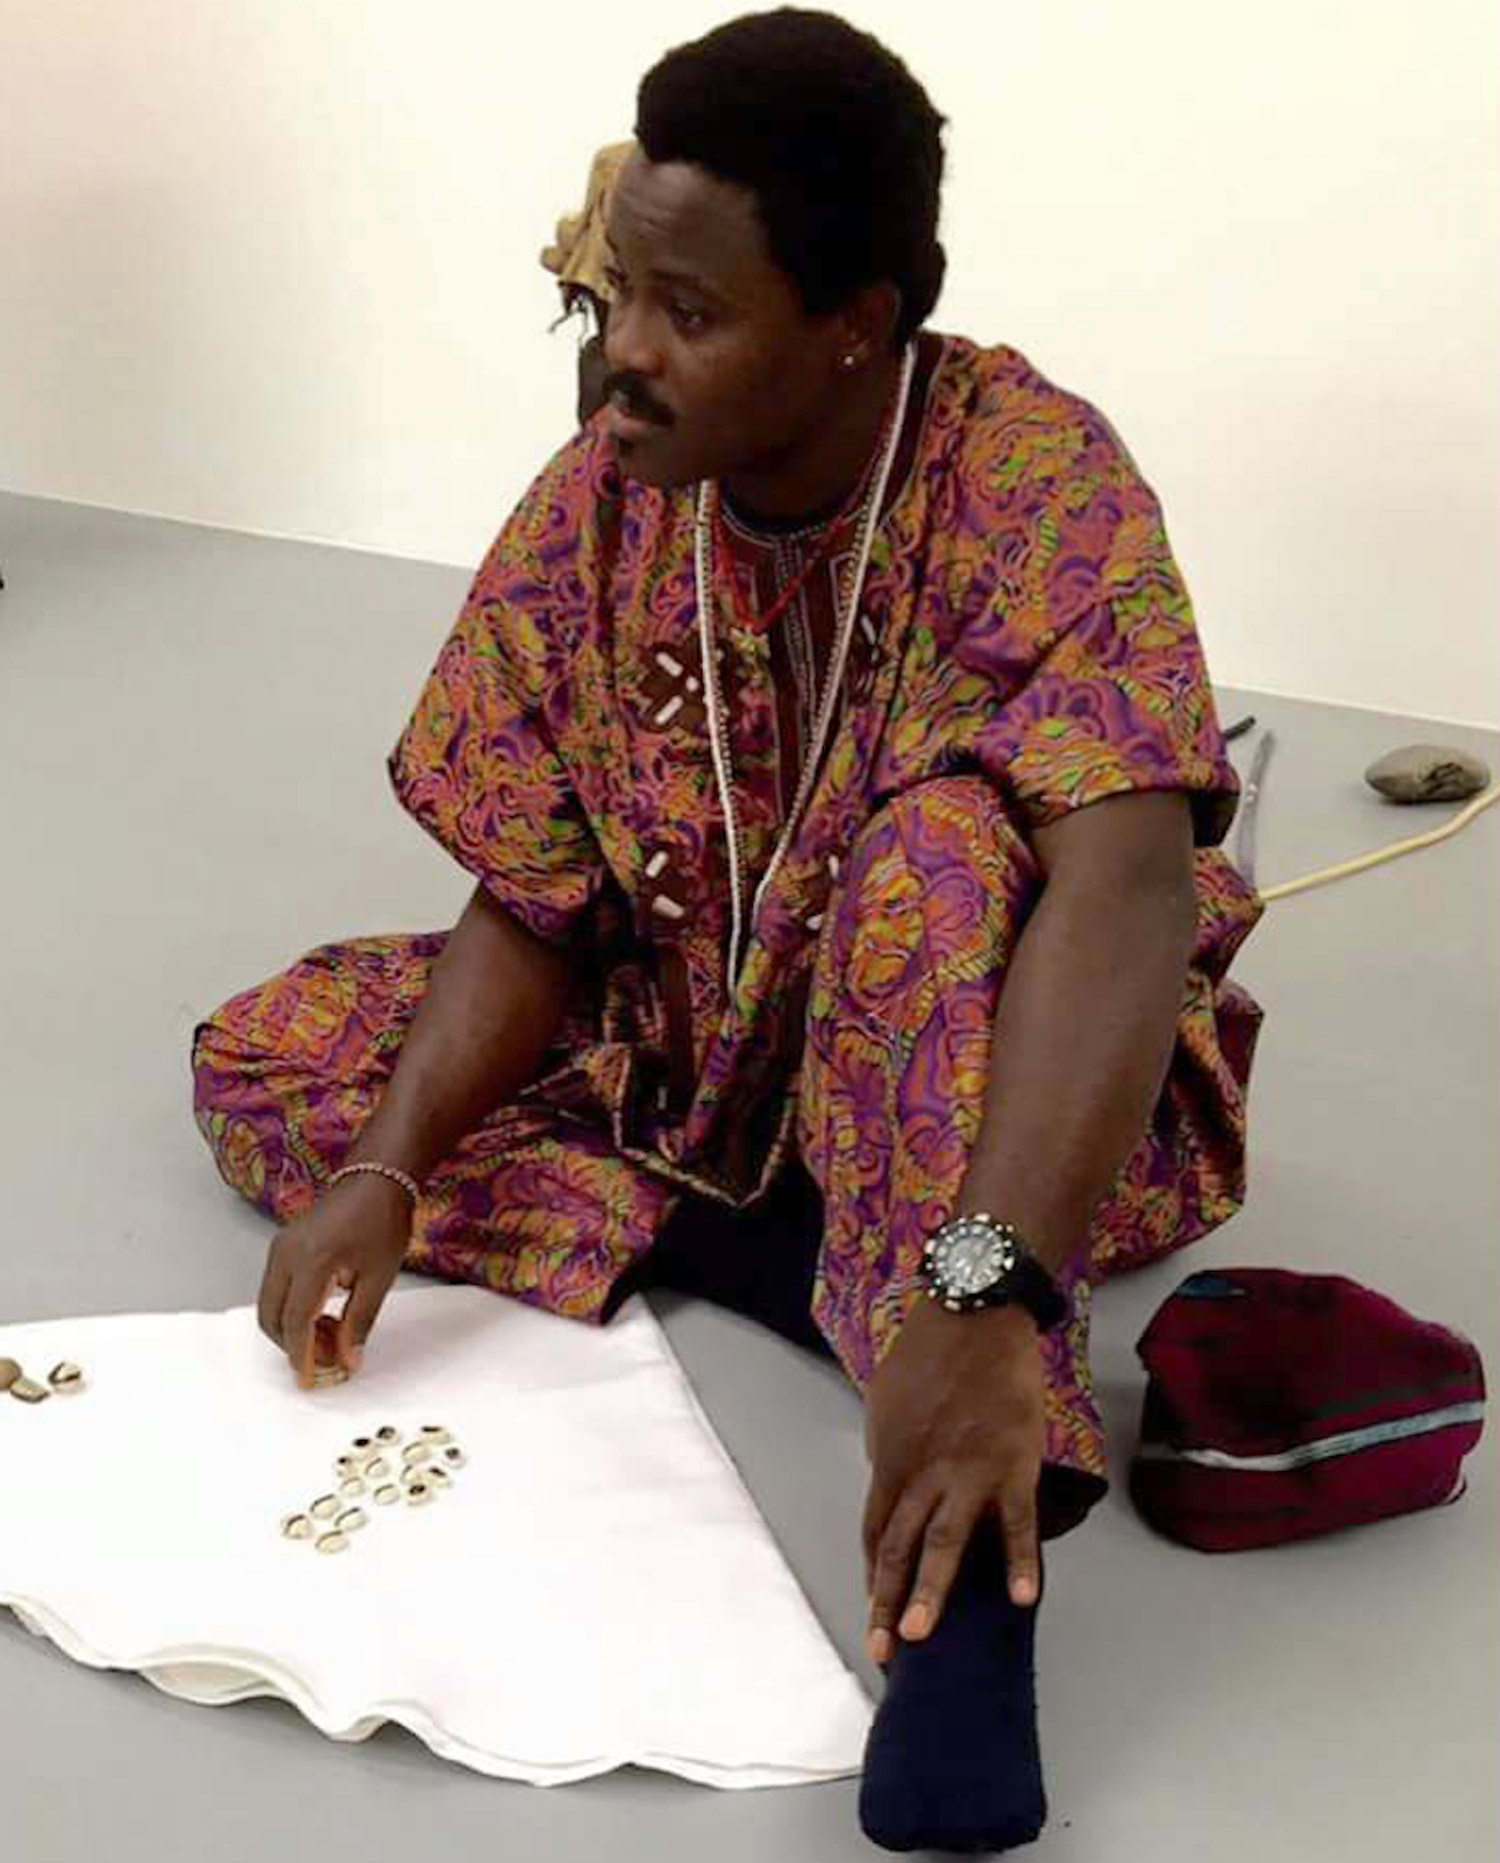 Sangosakin giving a lecture on Erindinlogun, the divination with cowry shells.